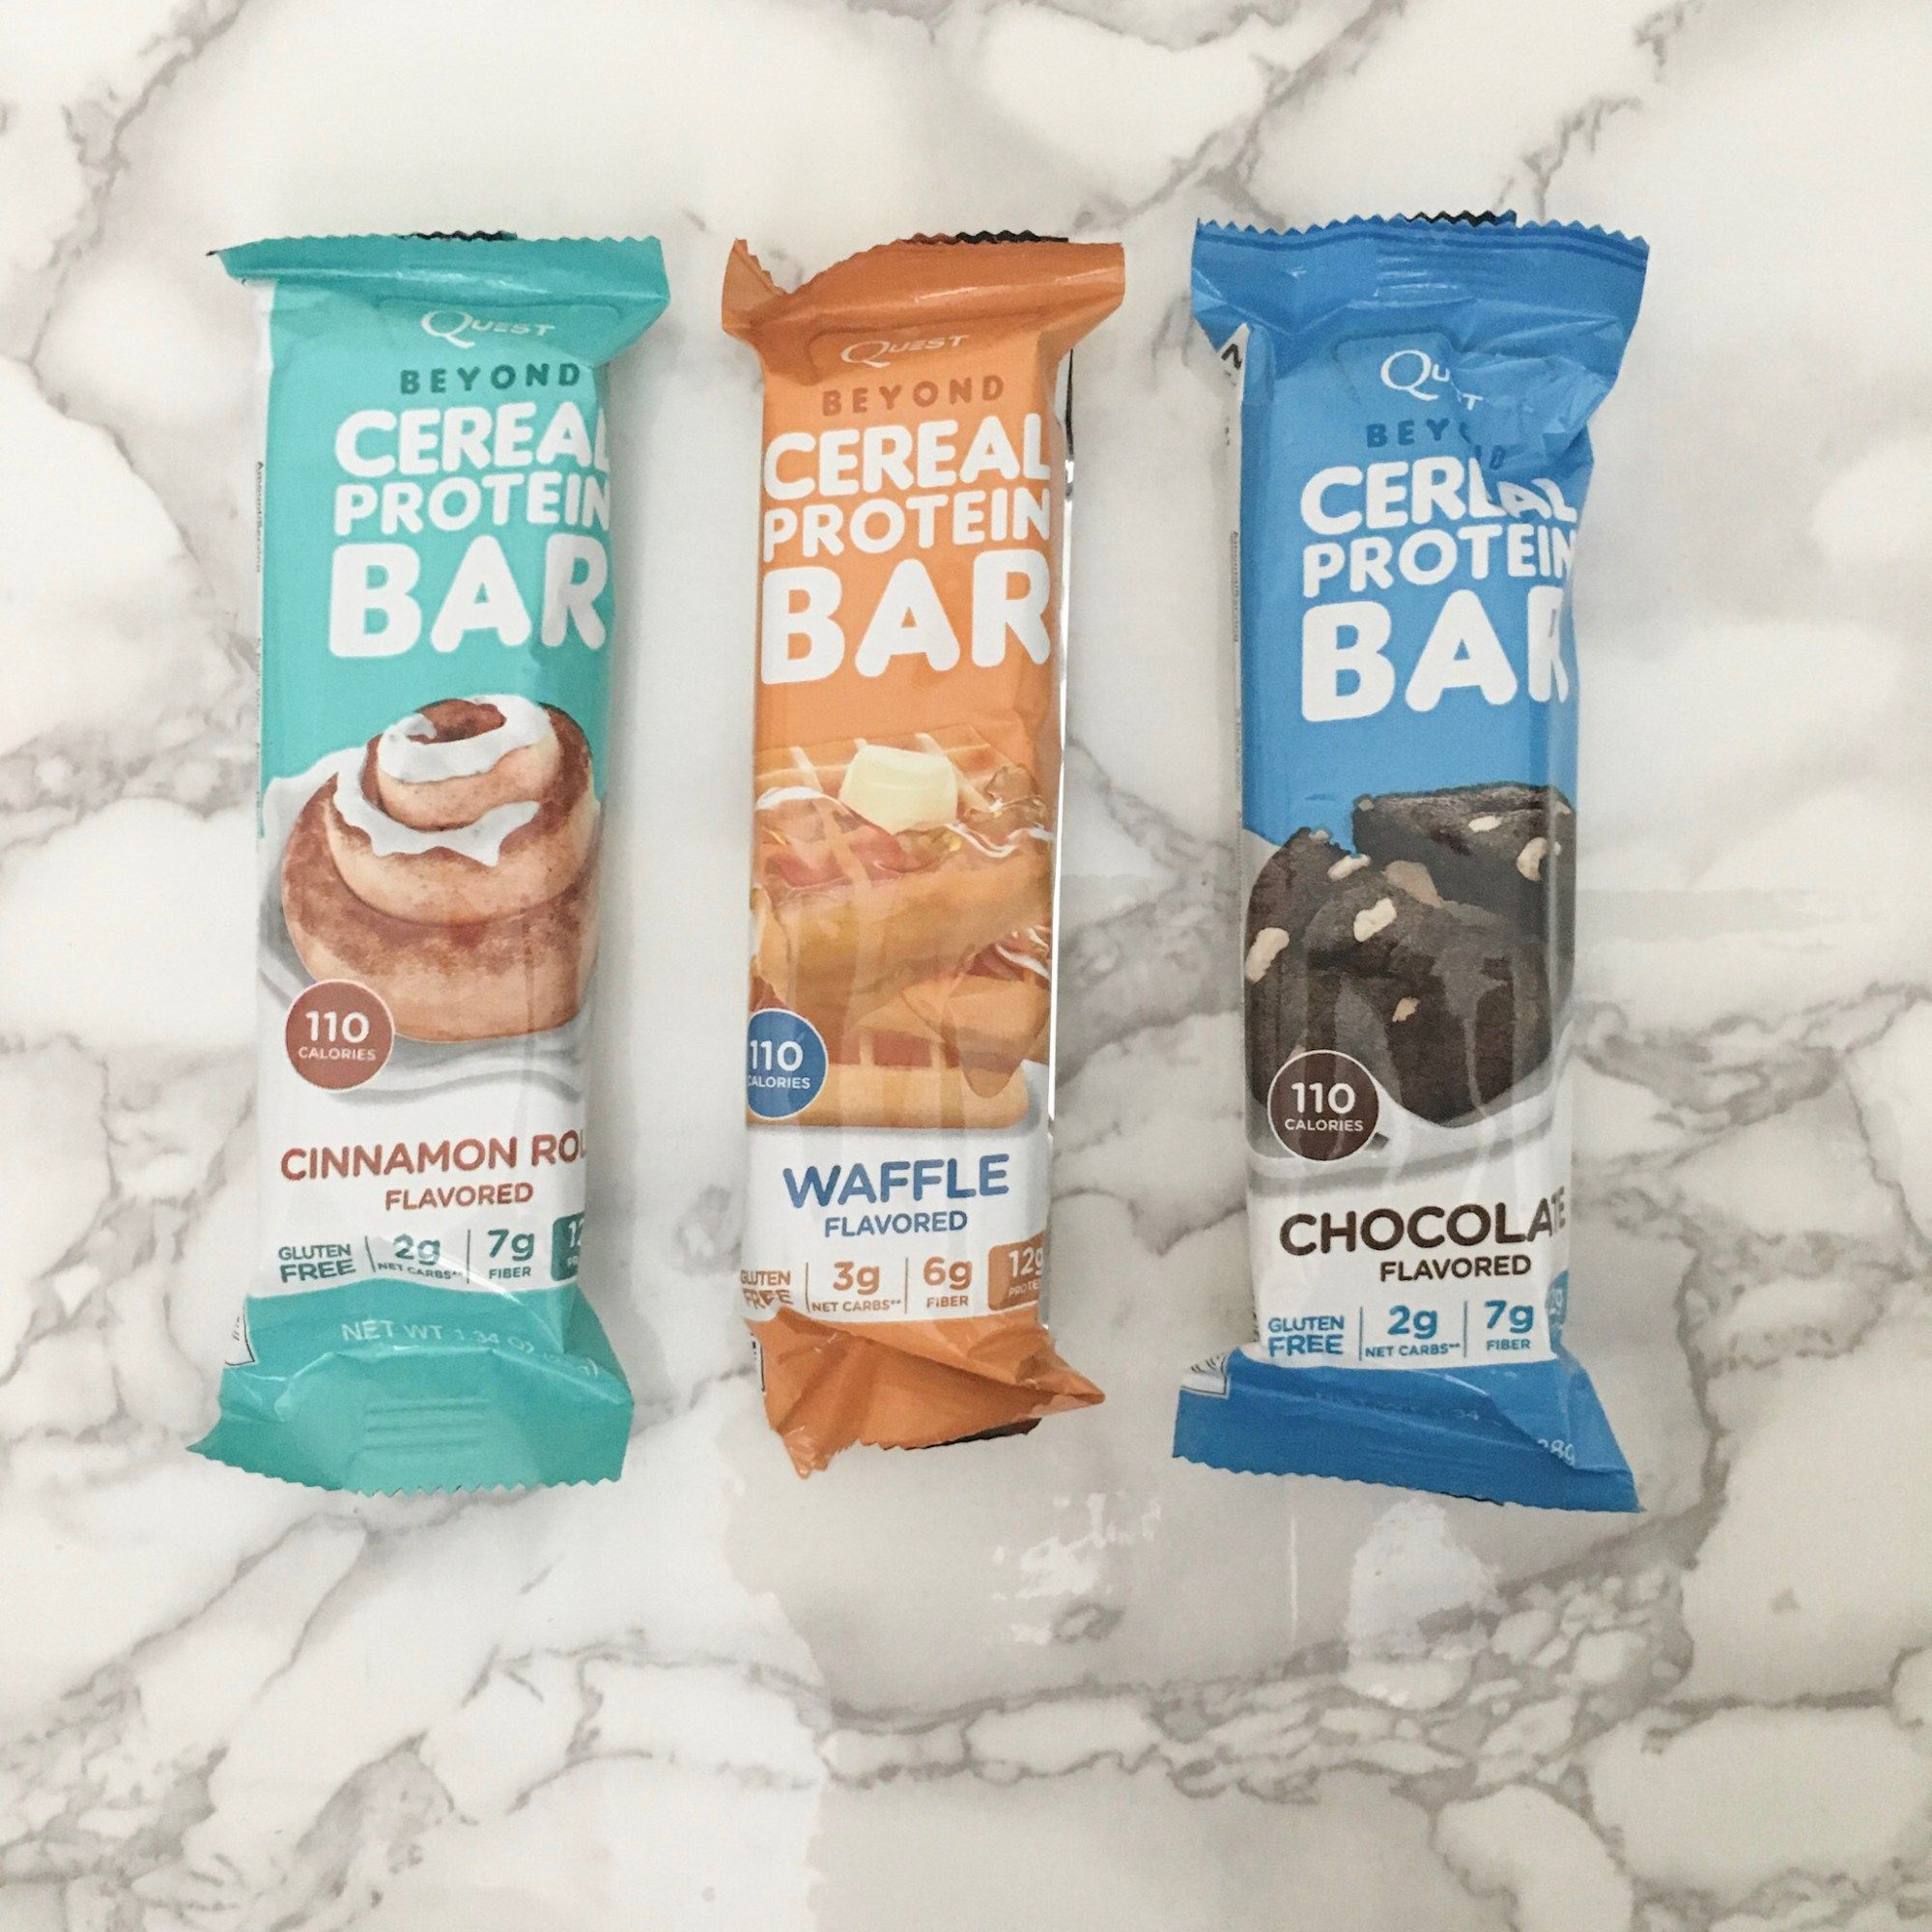 My Top 5 Protein Bar Picks